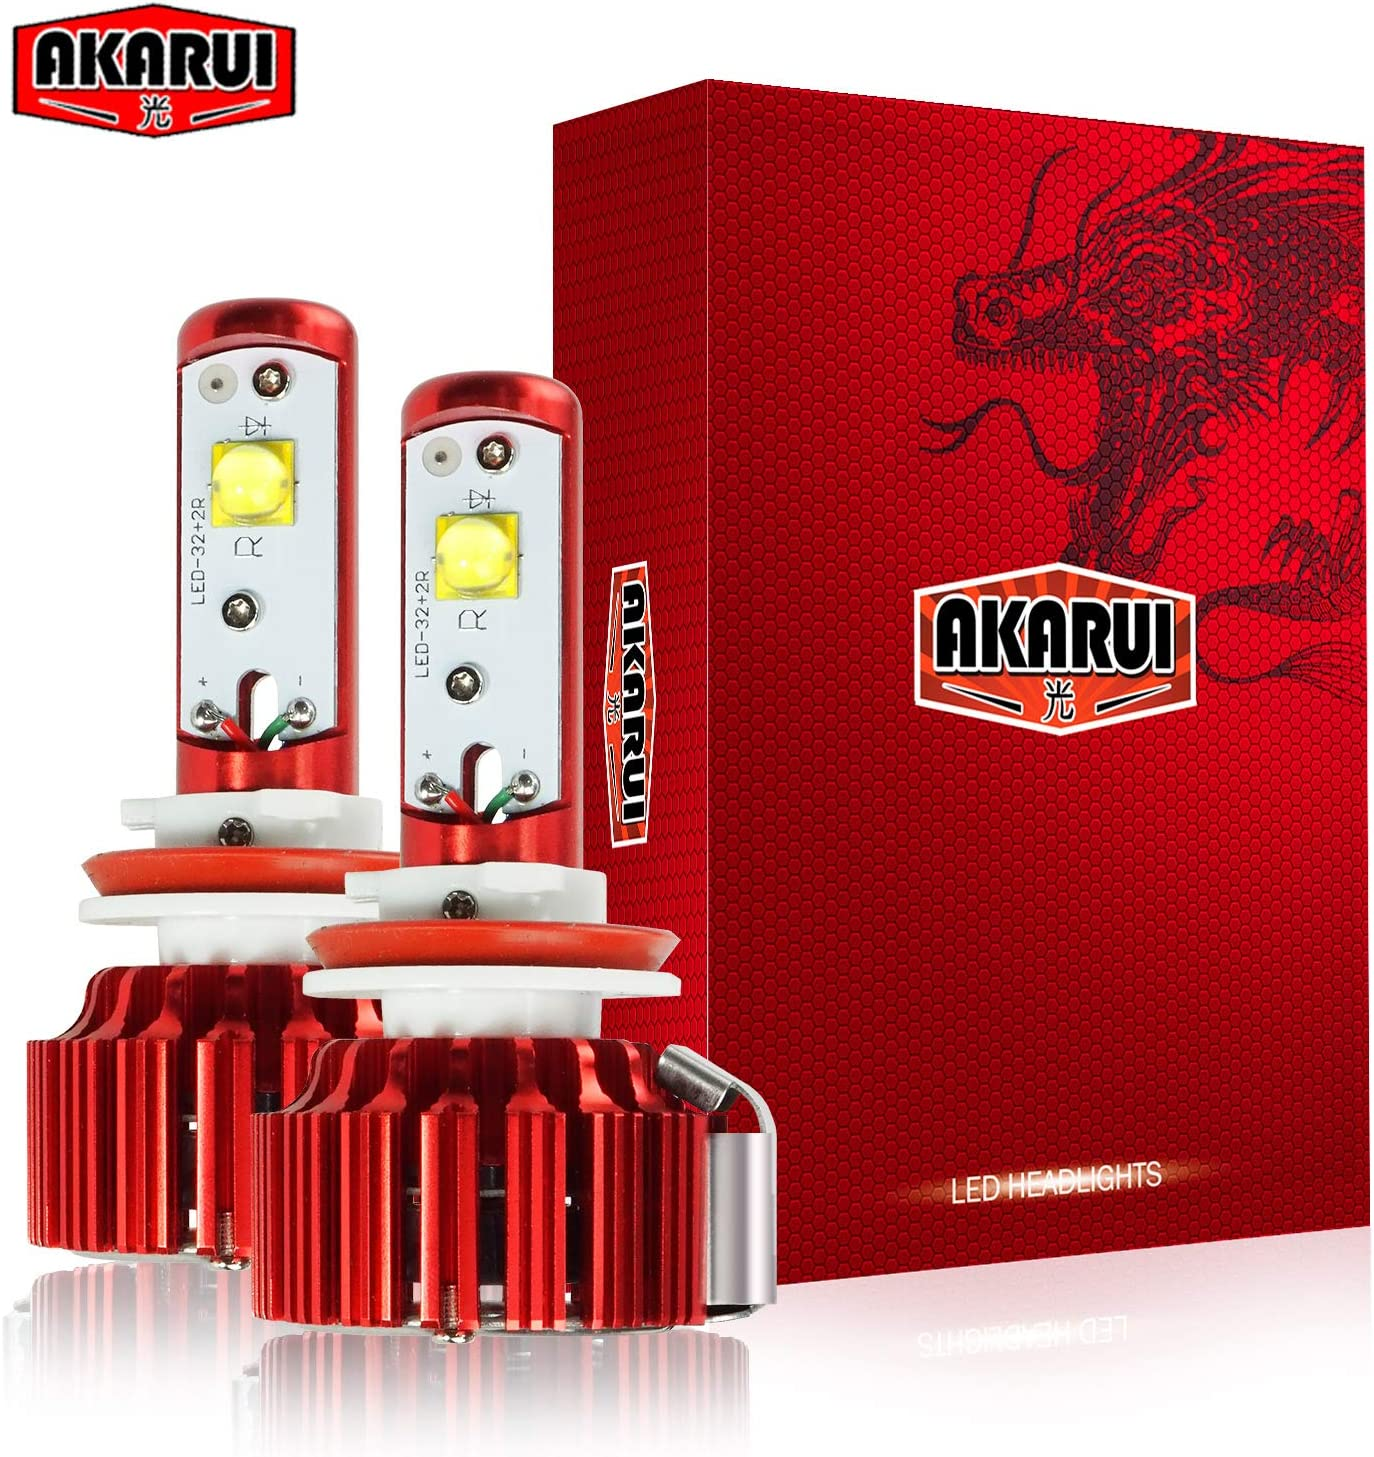 Akarui LED Headlight Bulbs